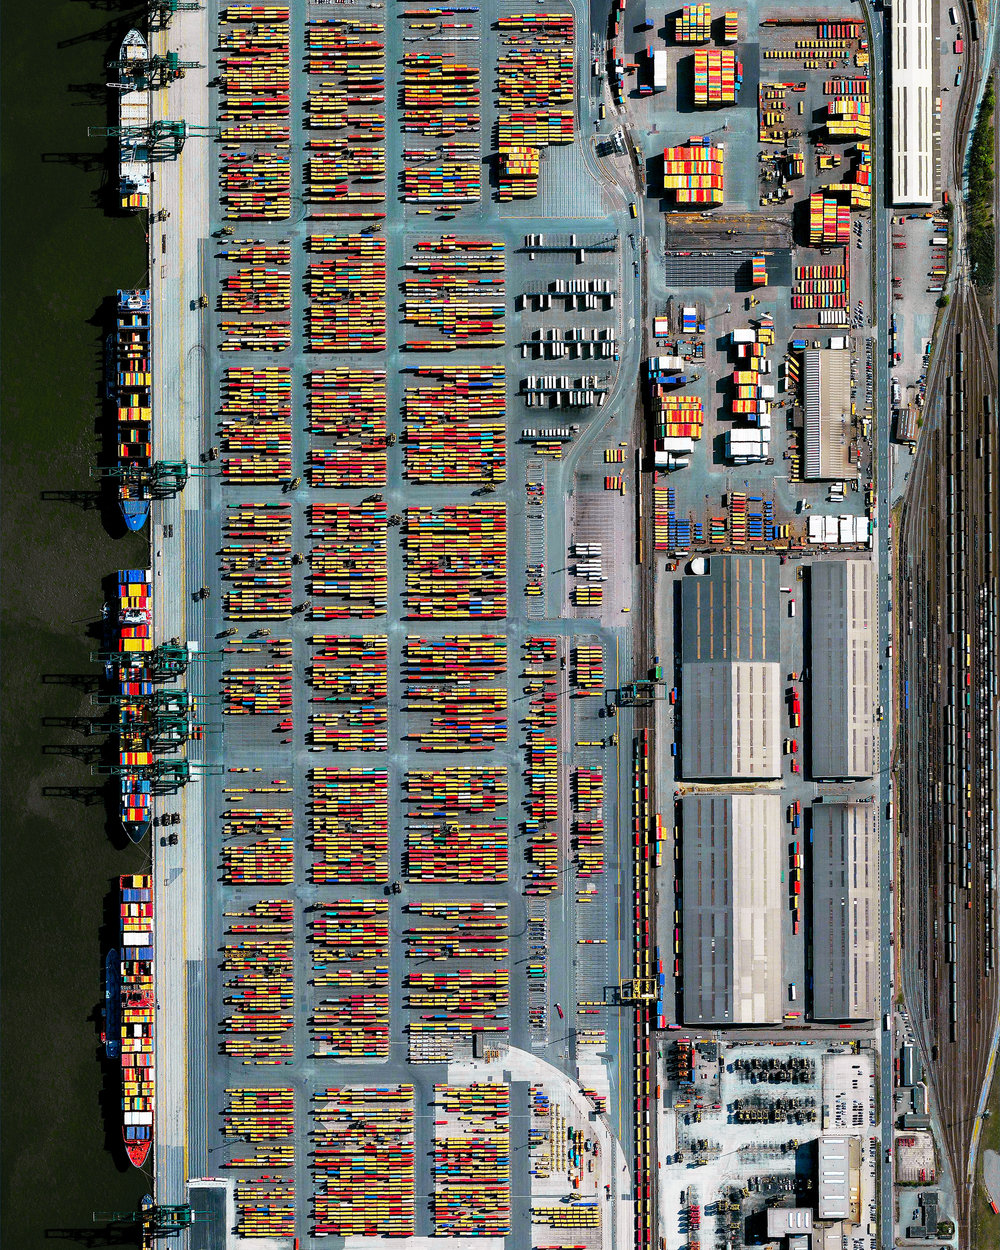 """The Port of Antwerp in Flanders, Belgium, is the second-largest seaport in Europe. Its inland location on a tidal estuary of the Scheldt River gives it an advantage over other North Sea ports, allowing its docks to connect to rail, road, river and canal transit systems. In 2018, nearly 14,600 seagoing vessels called at the Port of Antwerp with a combined transshipment of 235.2 million tonnes.  51°16'12.0""""N, 4°20'12.0""""E  Source imagery: DigitalGlobe"""